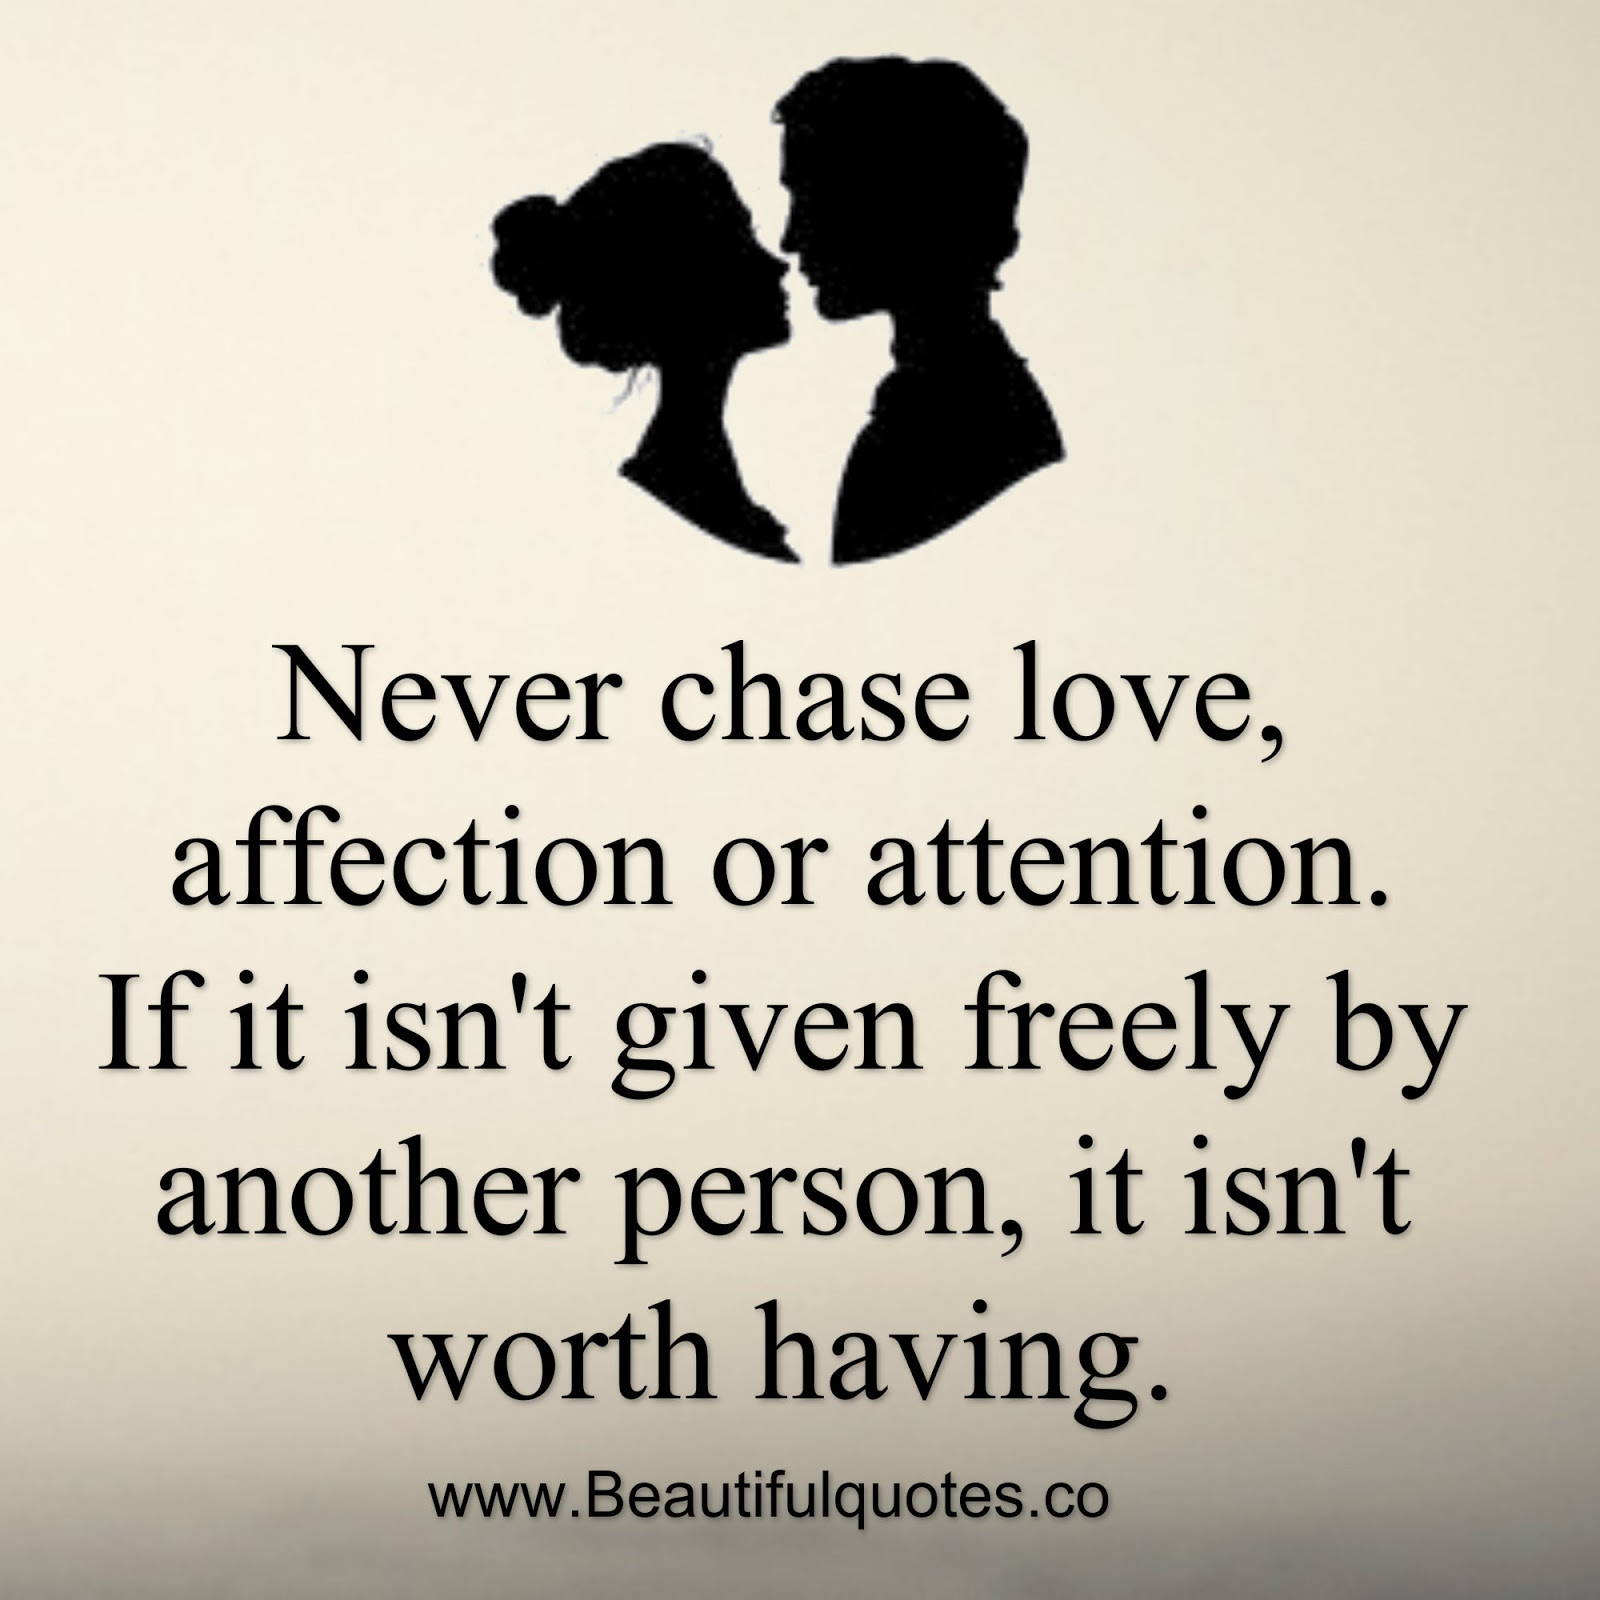 Quotes About Affection Beautiful Quotes Never Chase Love Affection Or Attention.